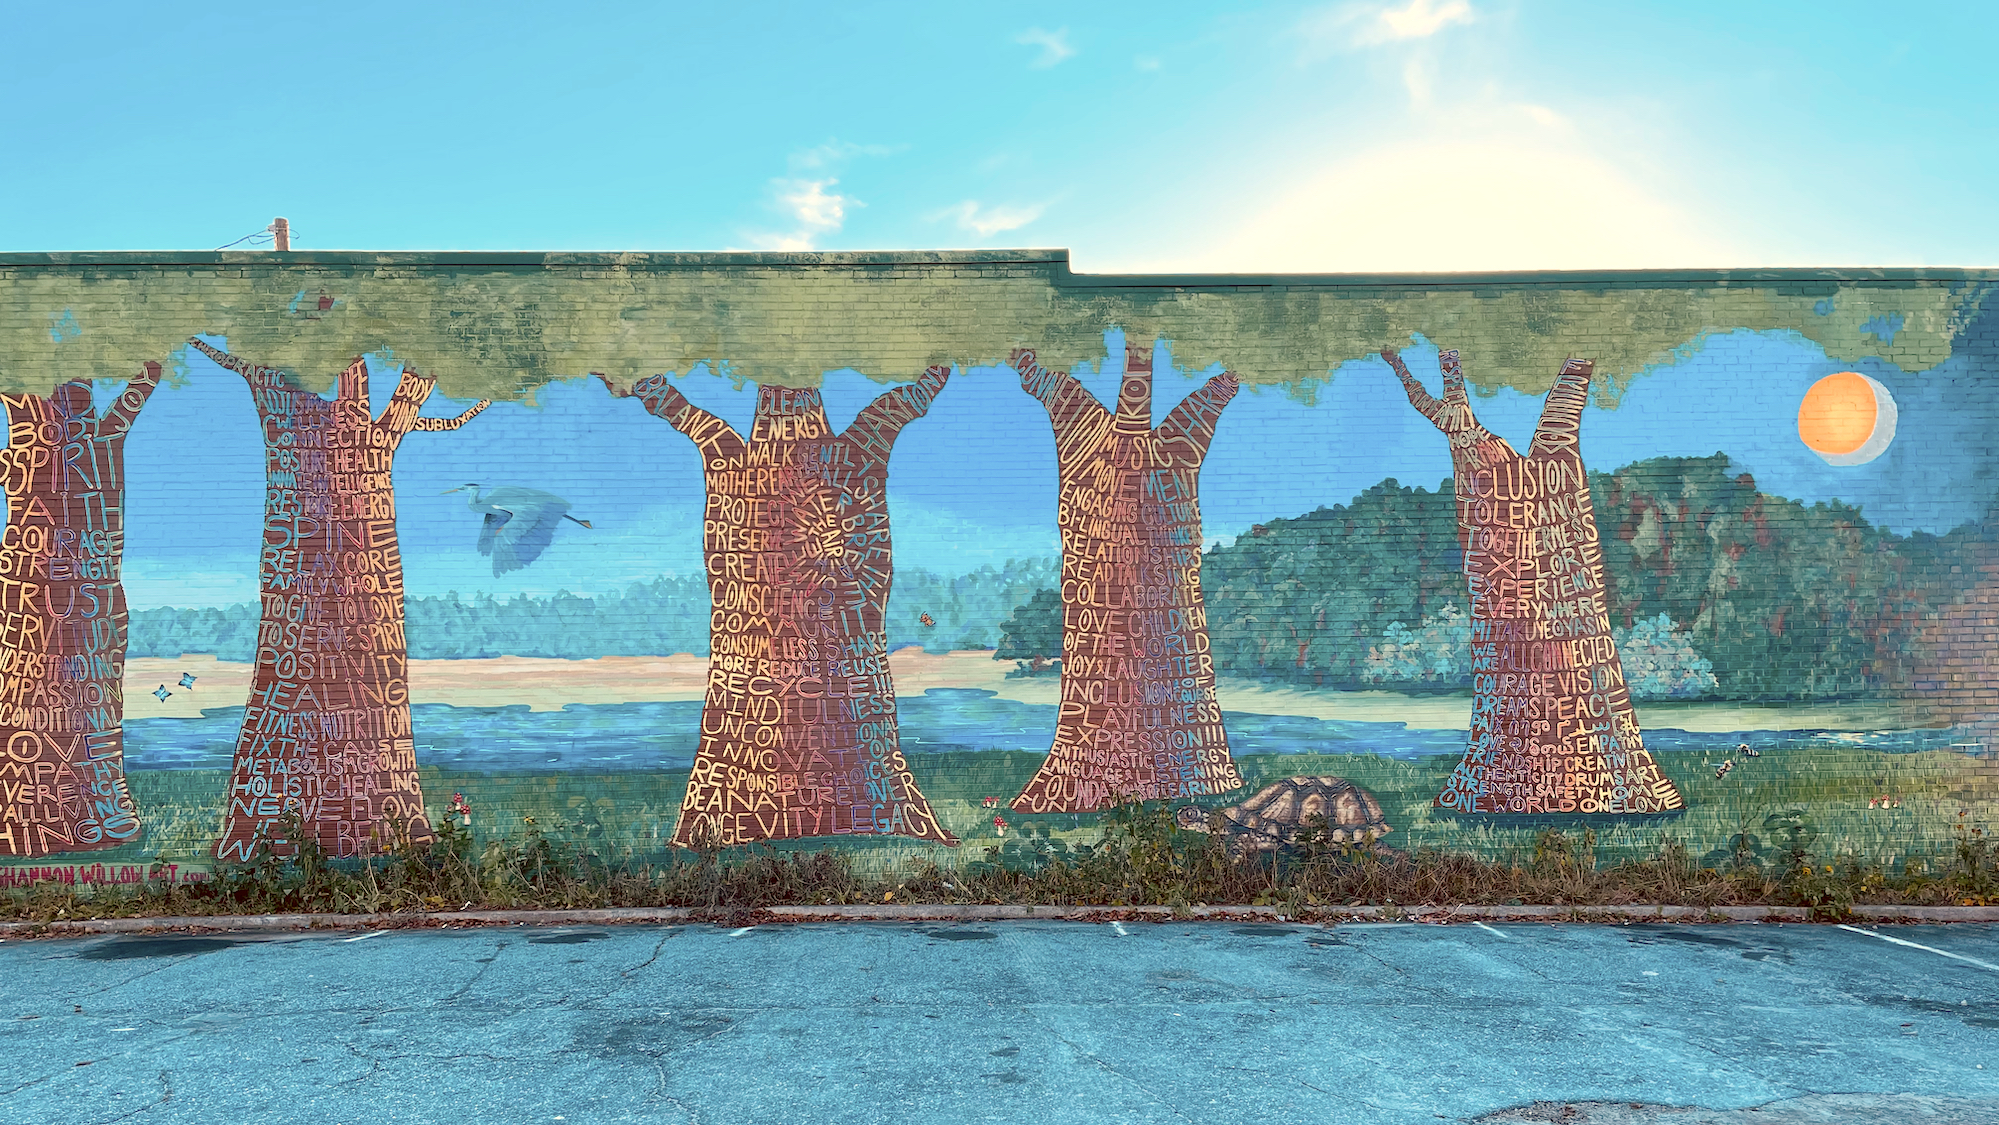 Clarkston mural of trees with words written on them and a pond backdrop on a sunny day.